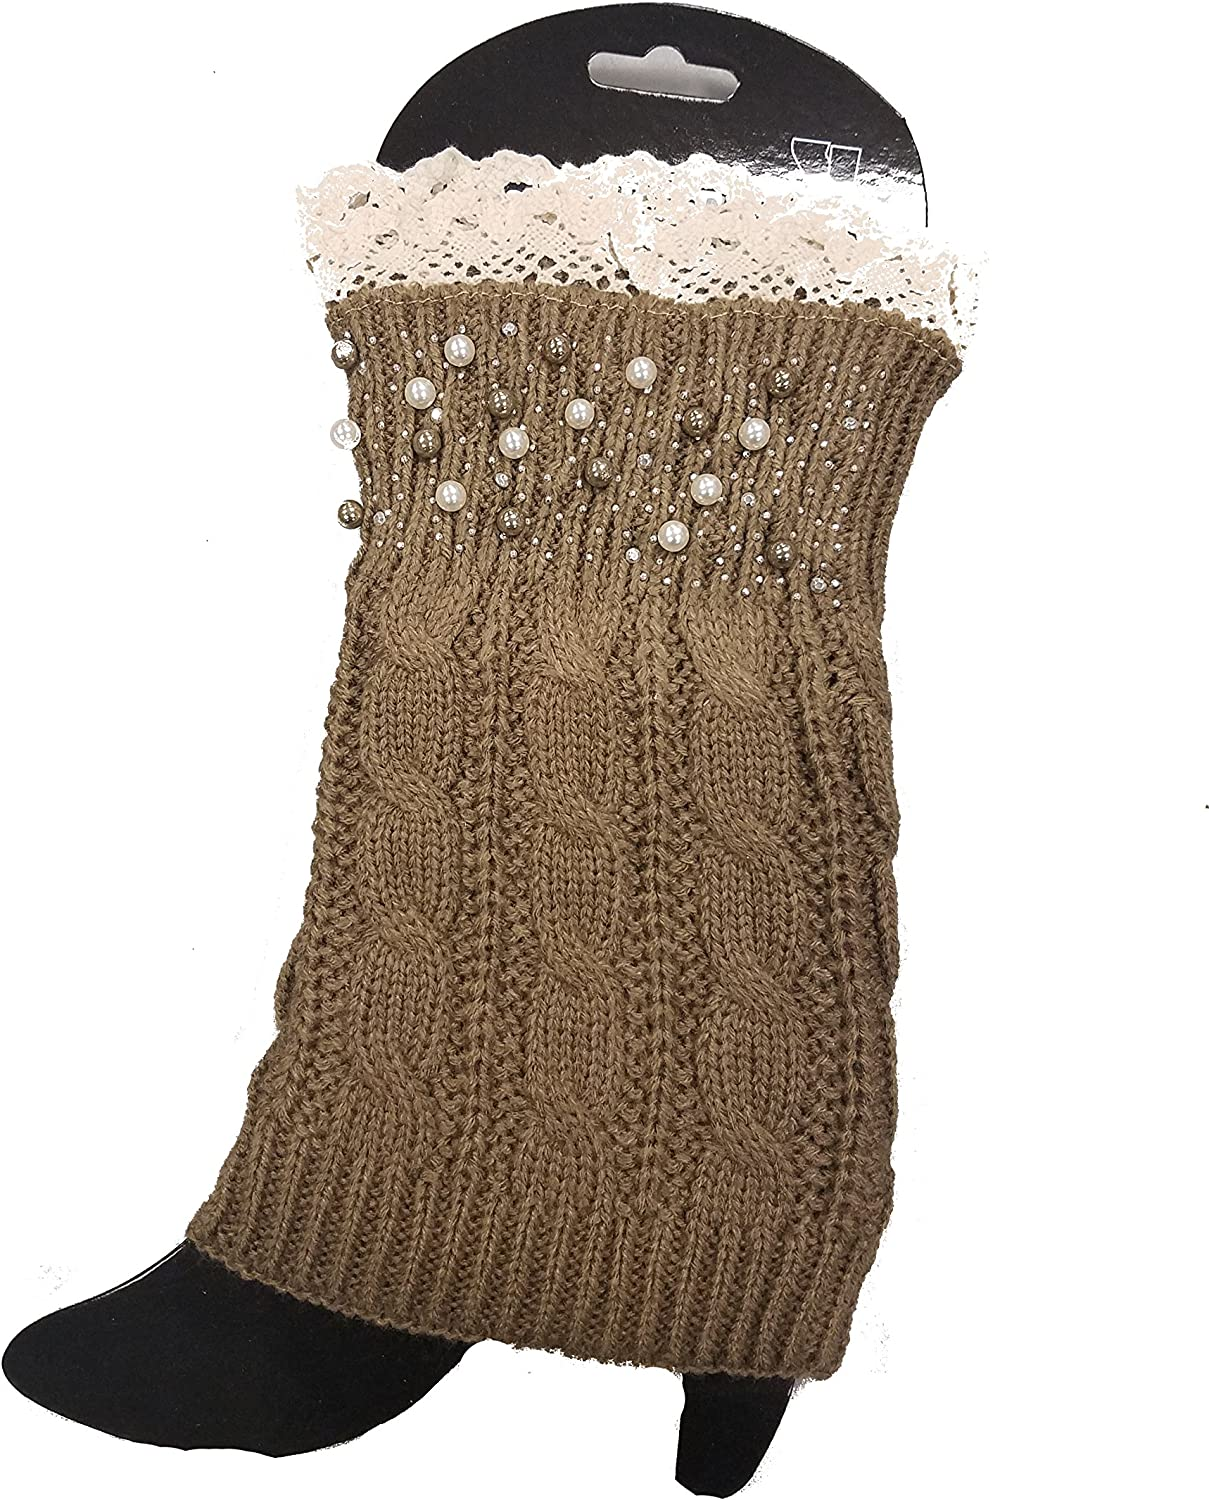 Adorable Beaded/Button and Lace Styles Leg Warmers/Boot Socks Topper Cuffs